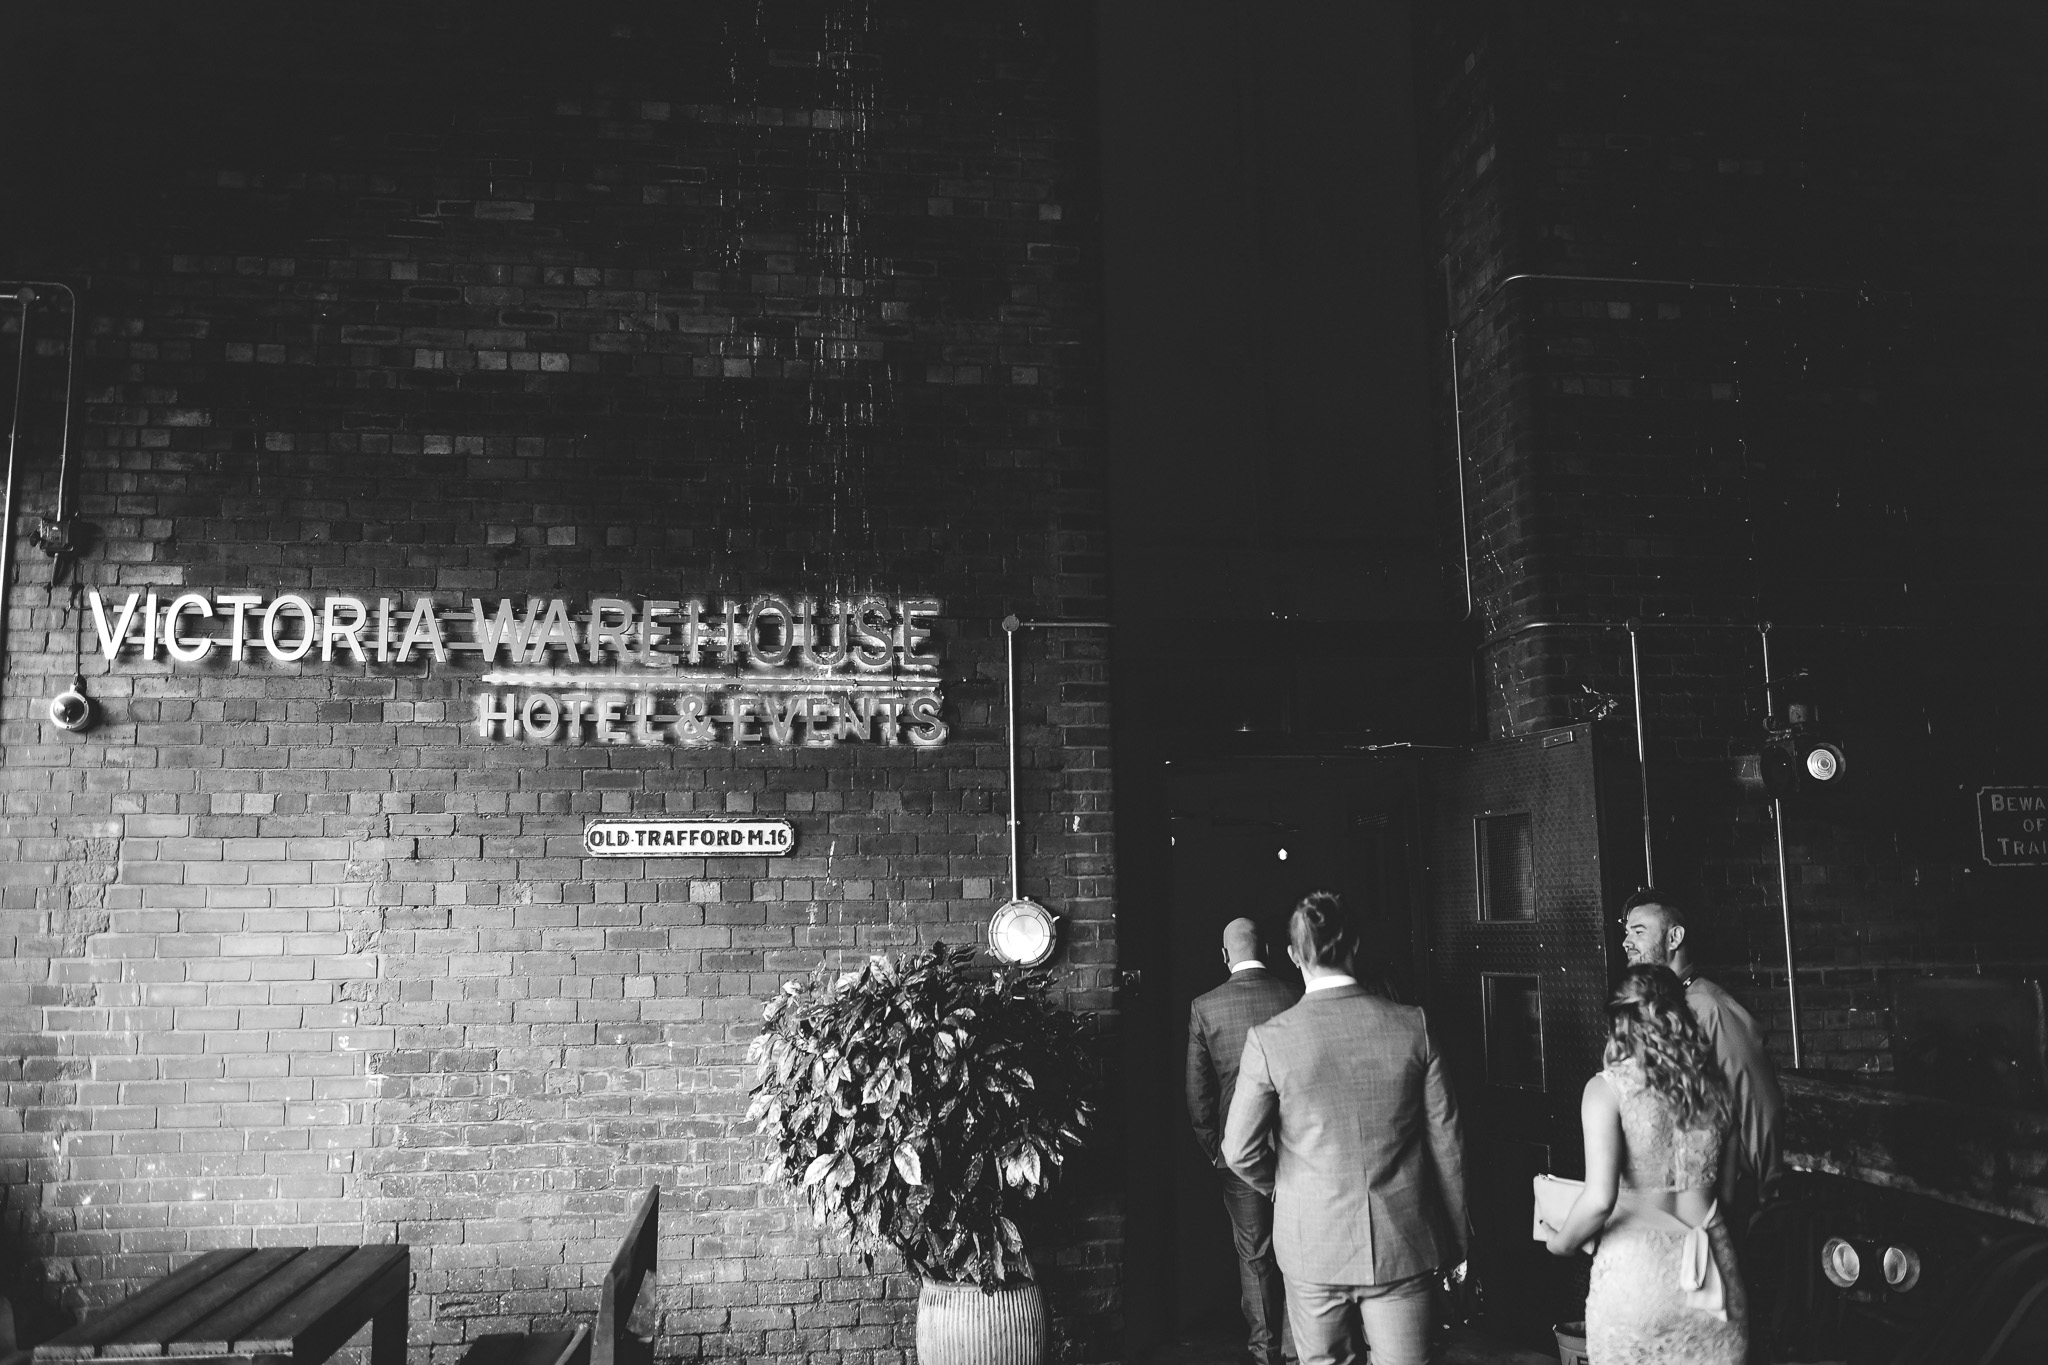 Guests arriving at Victoria Warehouse